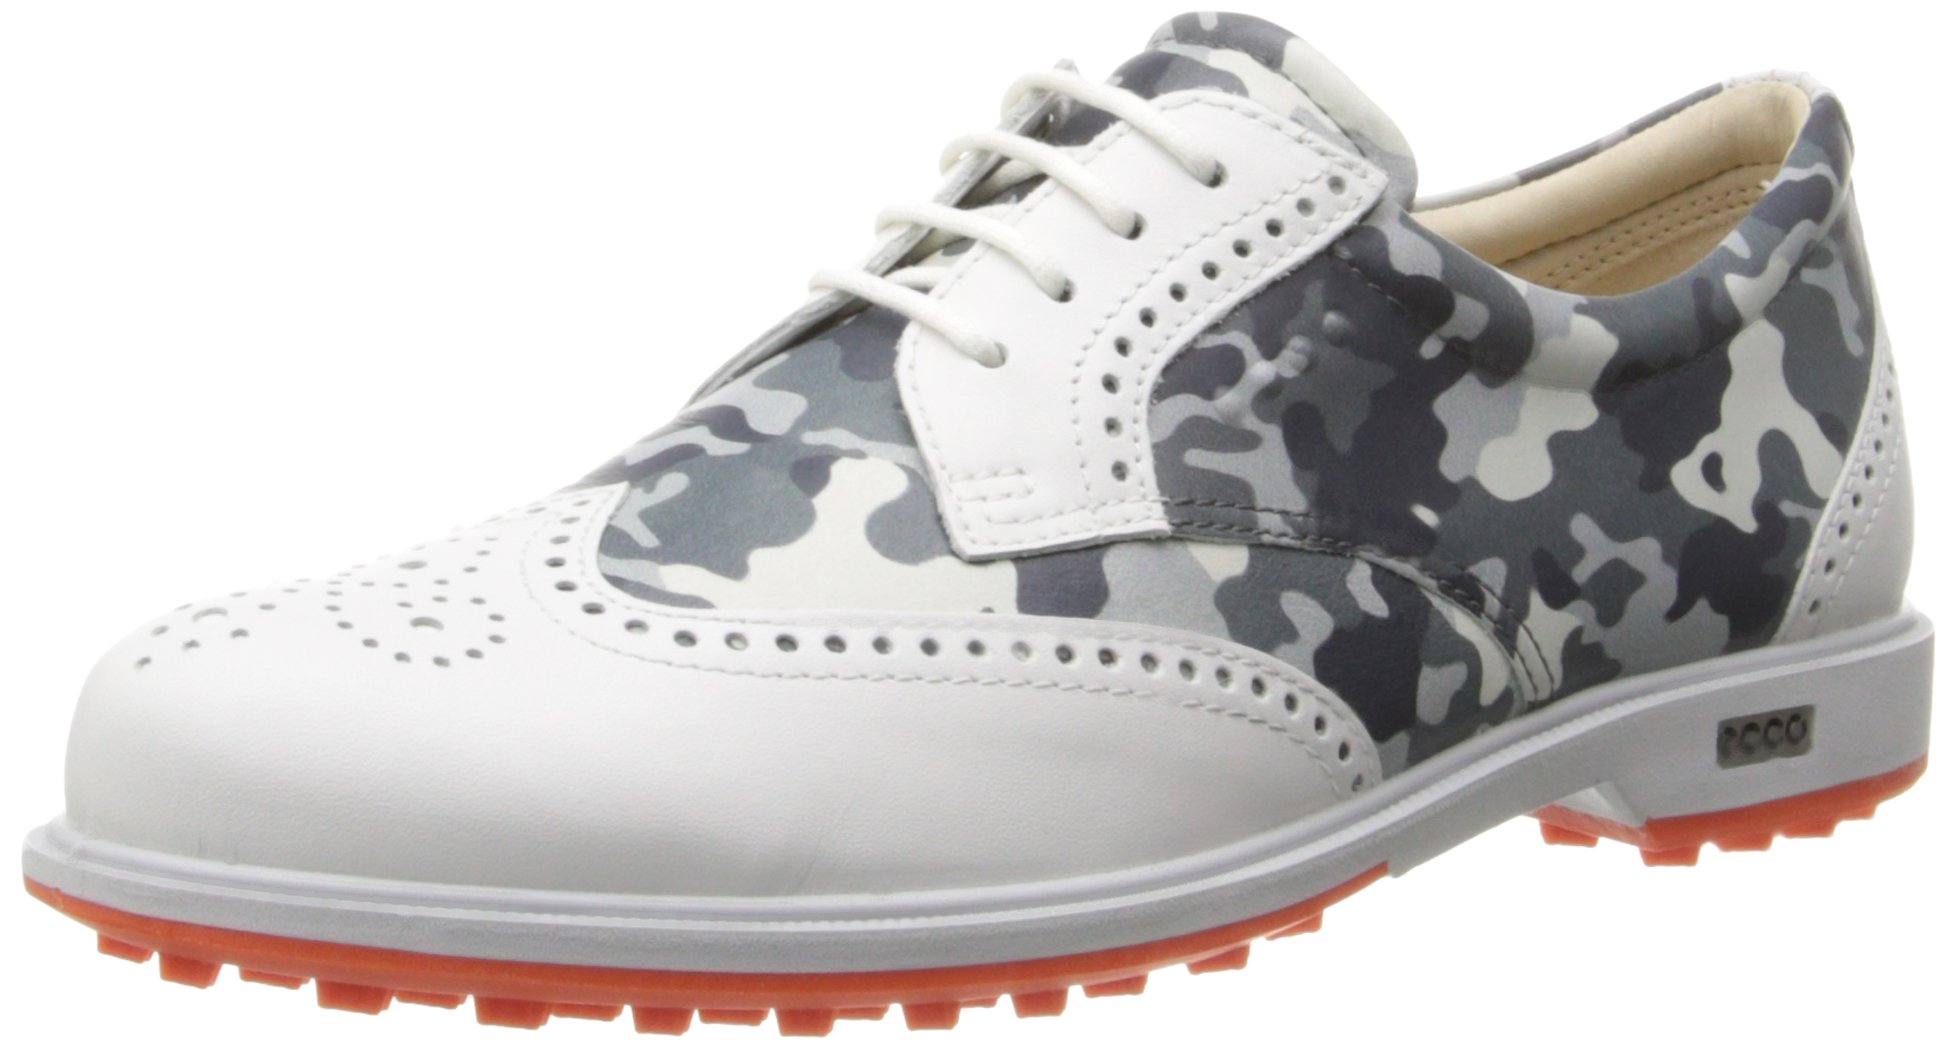 ECCO Women's Tour Hybrid Golf Shoe,White/Titanium,40 EU/9-9.5 M US